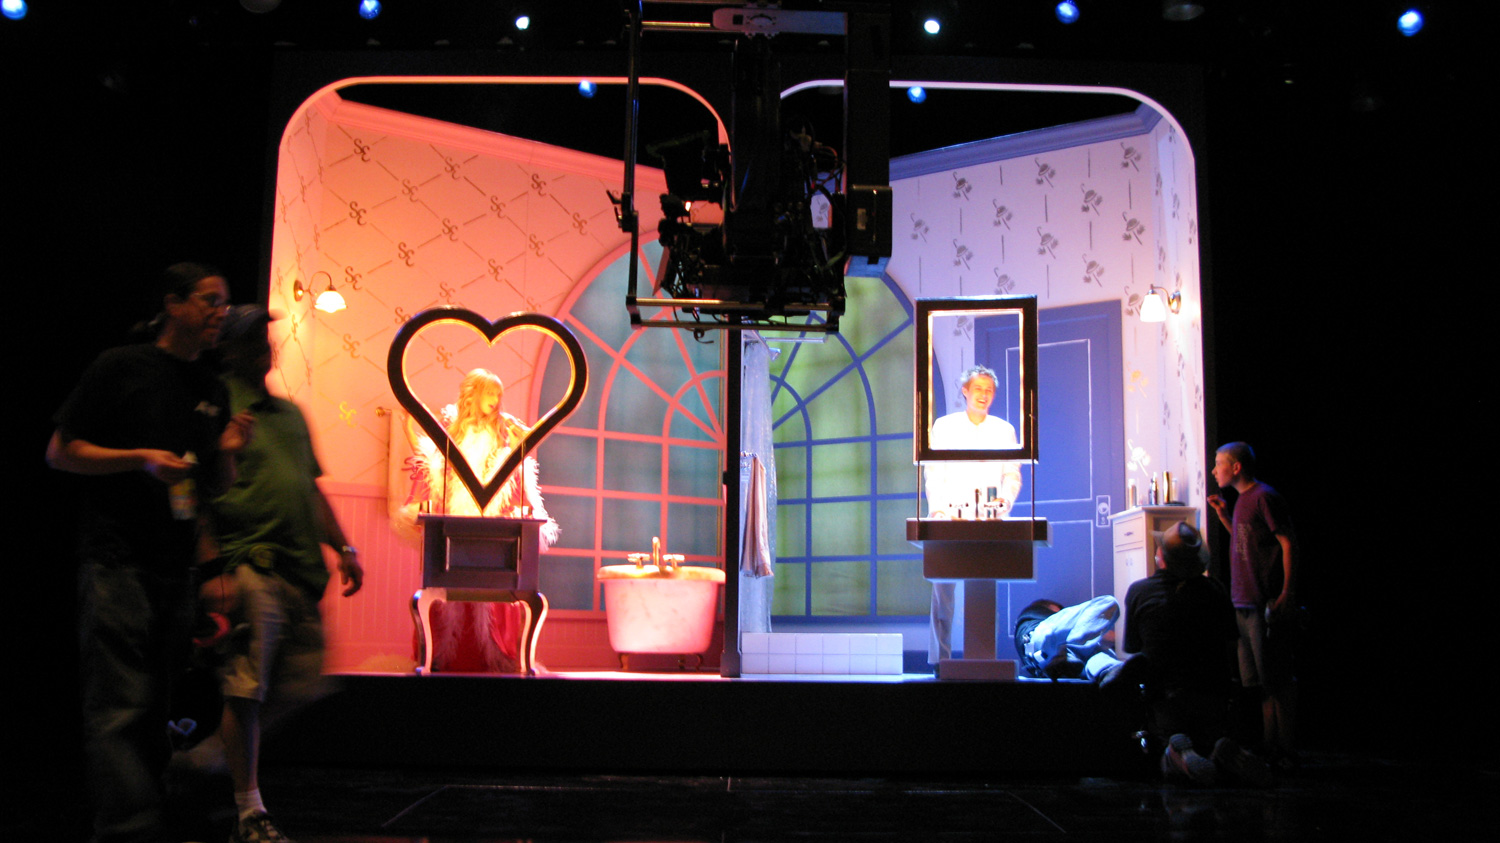 Sharpay (Ashley Tisdale) and Ryan (Lucas Grabeel) prepare for their big prom night in their split bathroom wagon set. The bathroom rolls away, and a curtain raises revealing a neighborhood.